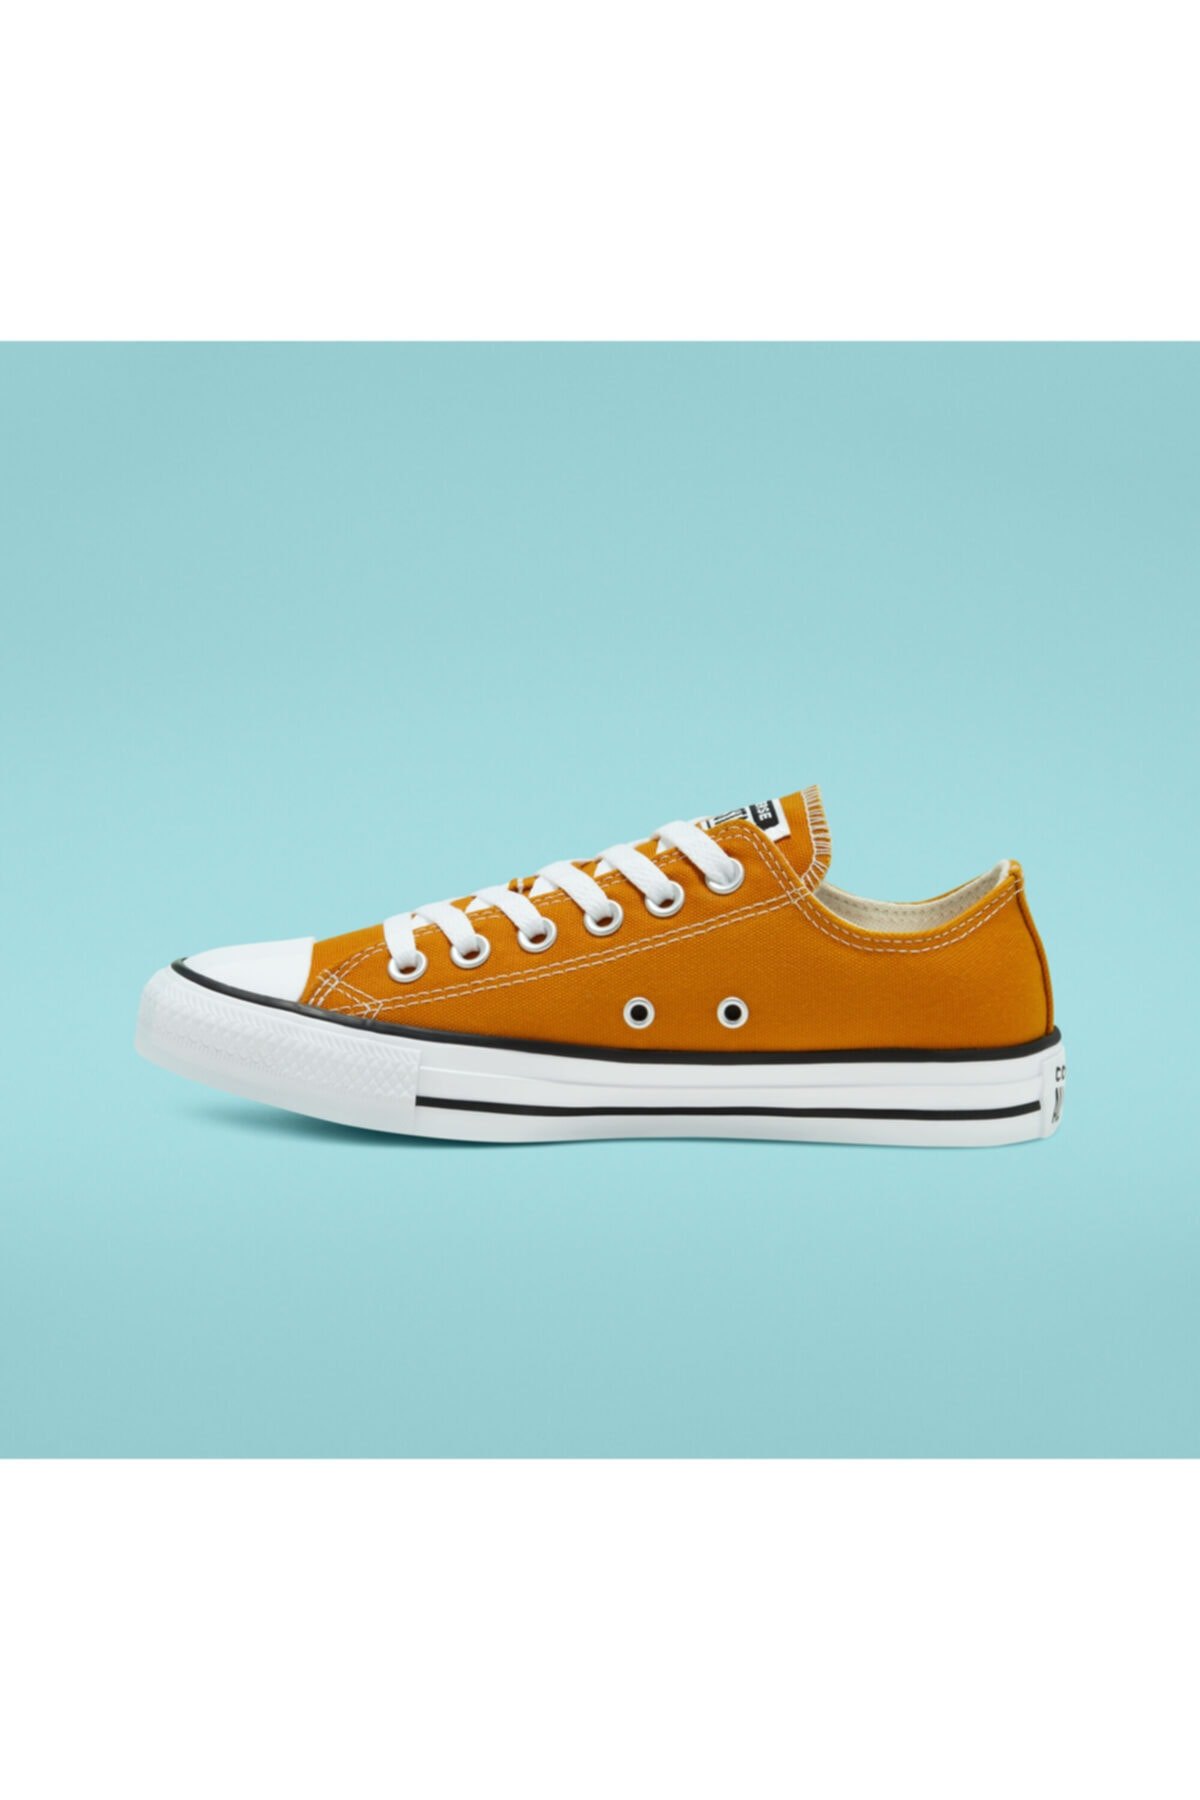 converse Unisex Colors Chuck Taylor All Star 2